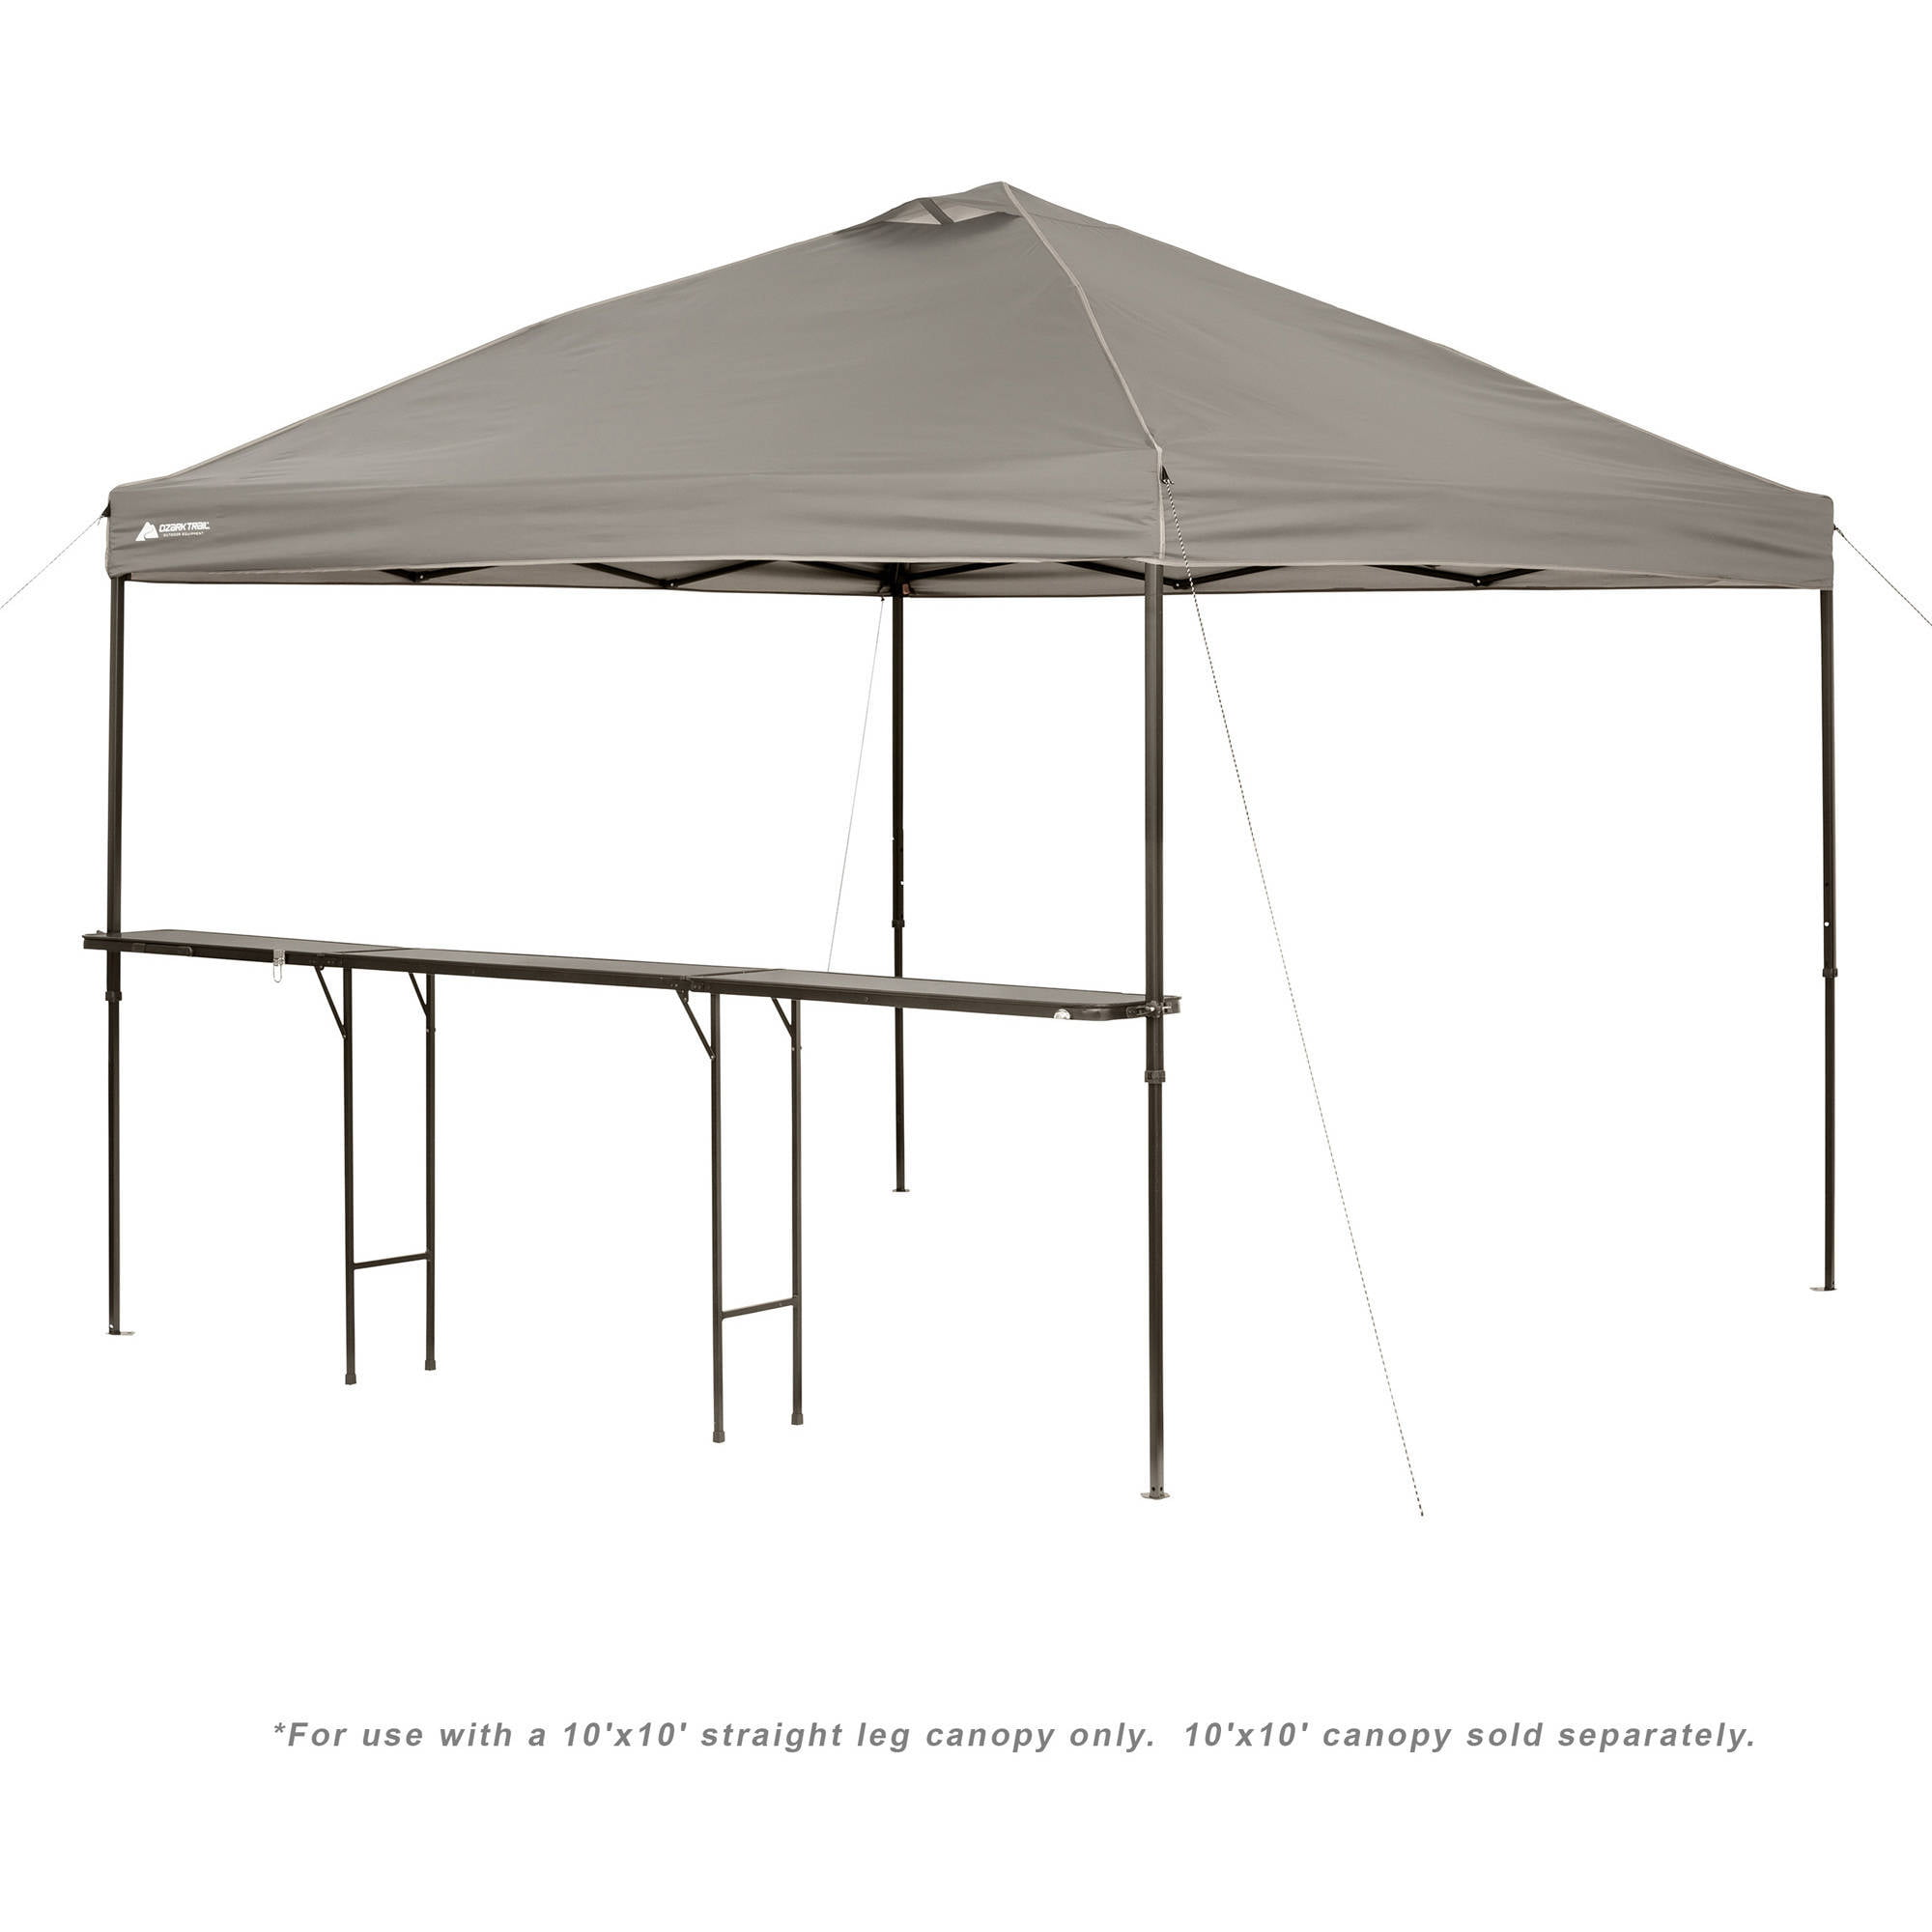 Ozark trail bar height 10 folding canopy table walmart watchthetrailerfo